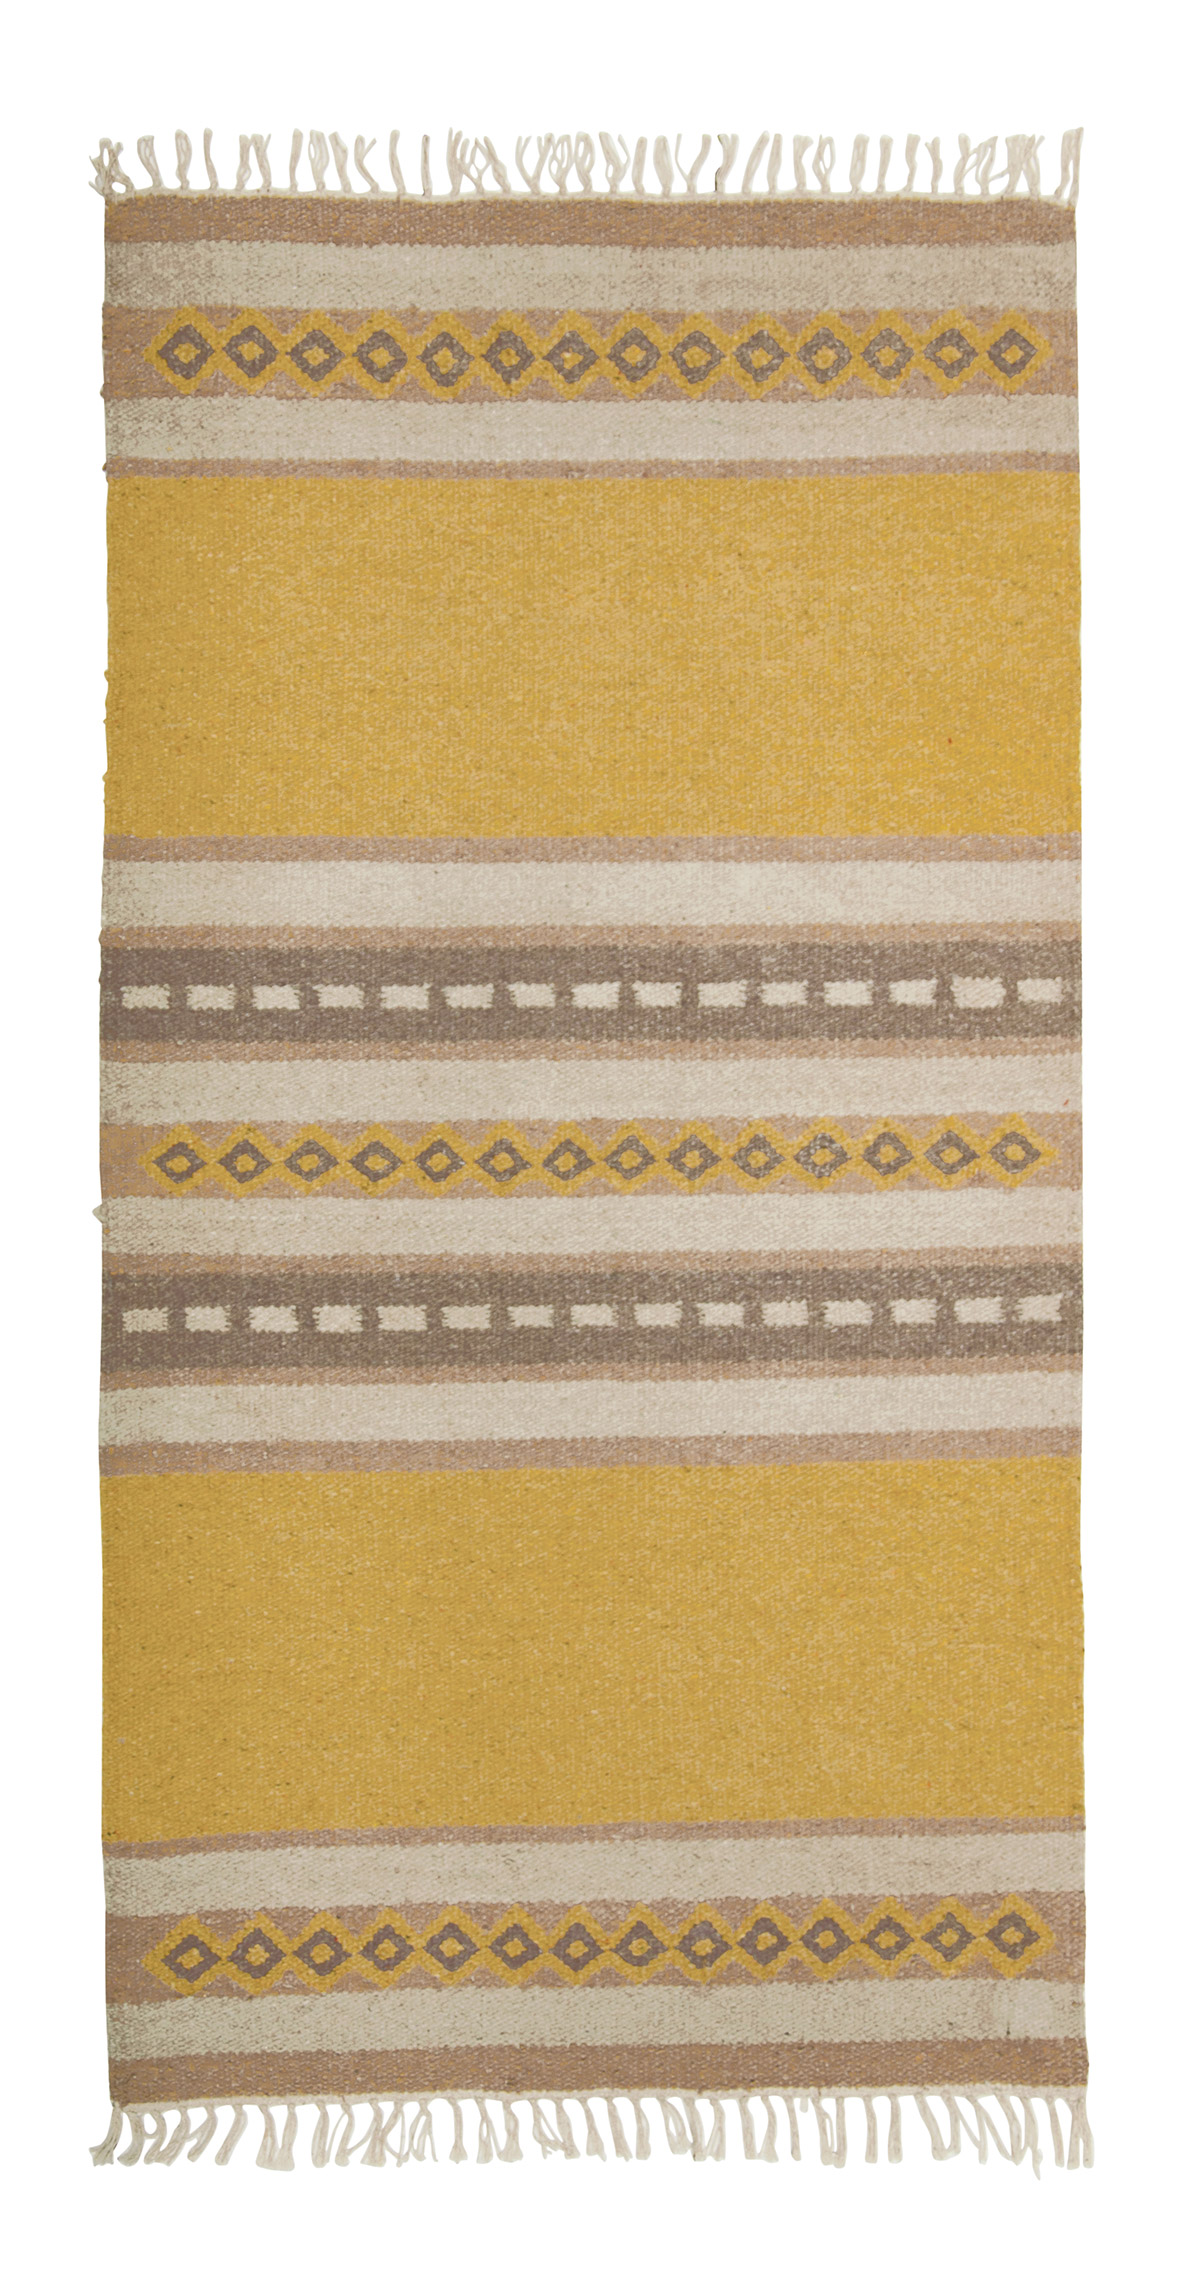 Gold Ochre Yellow and Brown Patterned Recycled Cotton Flat Weave Rug 3 Sizes Fair Trade GoodWeave